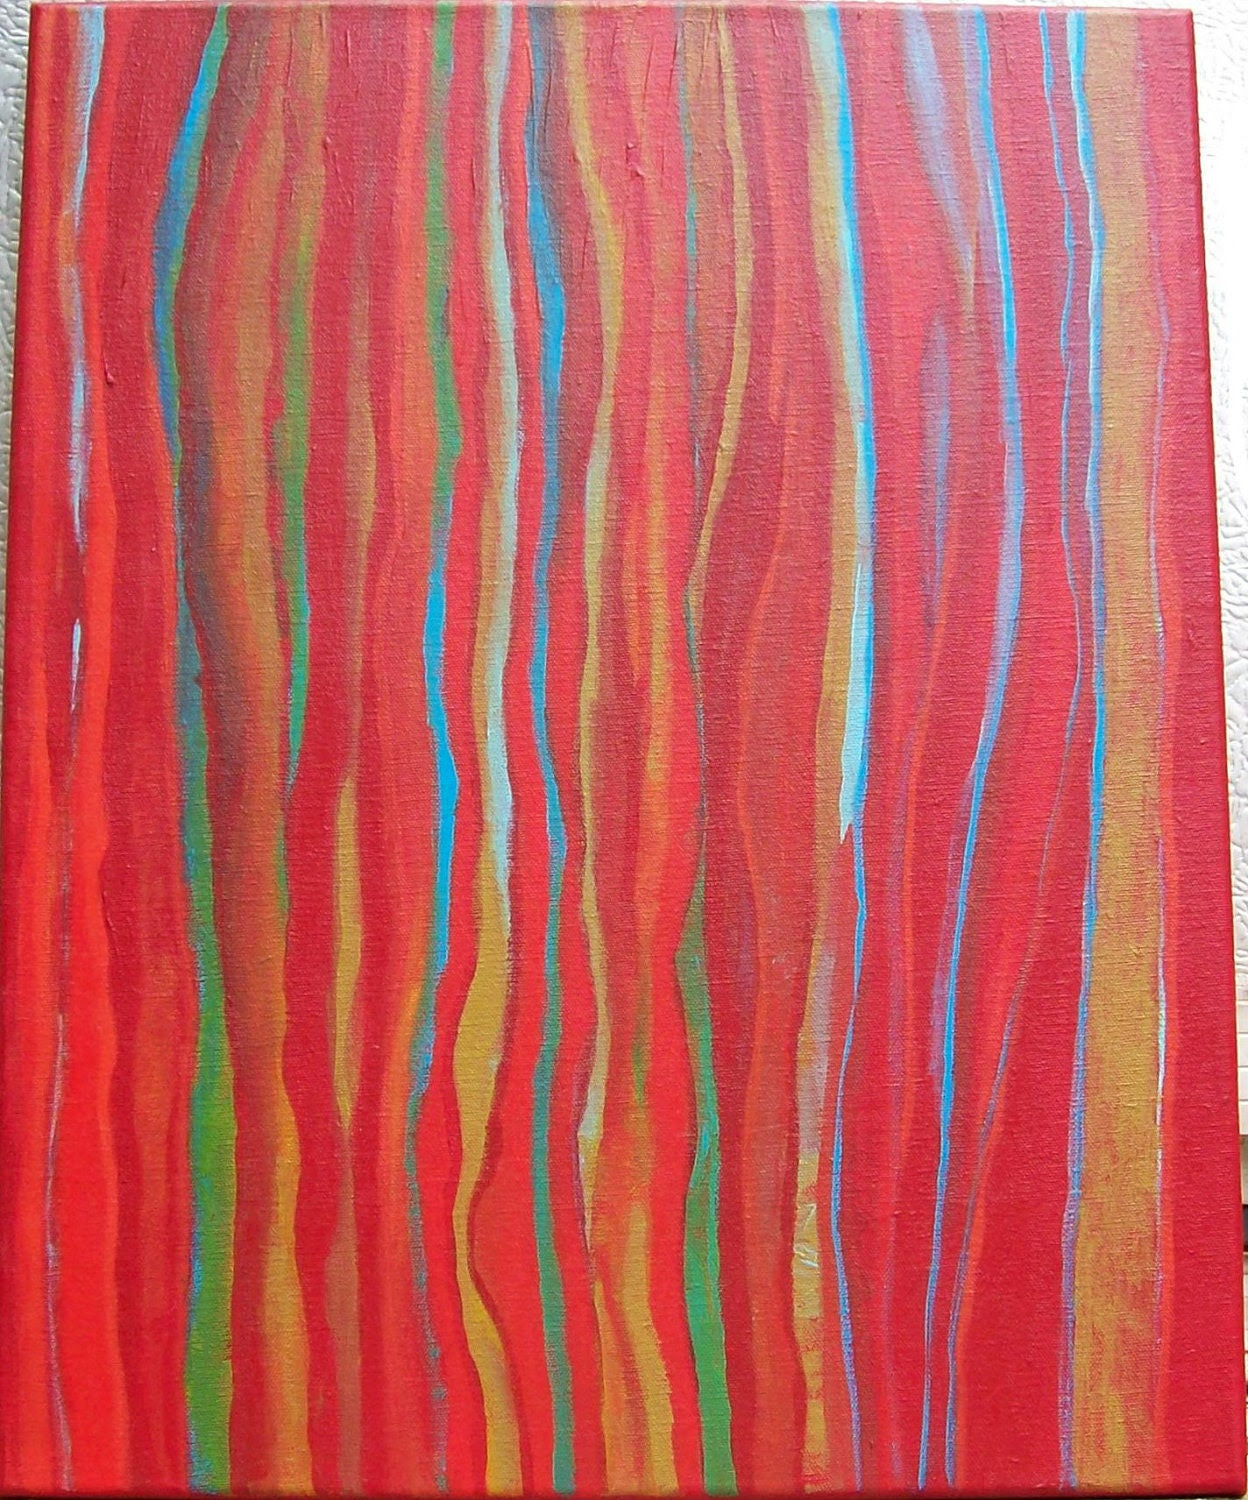 Contemporary Abstract Art Painting - Miles to go .... before I sleep